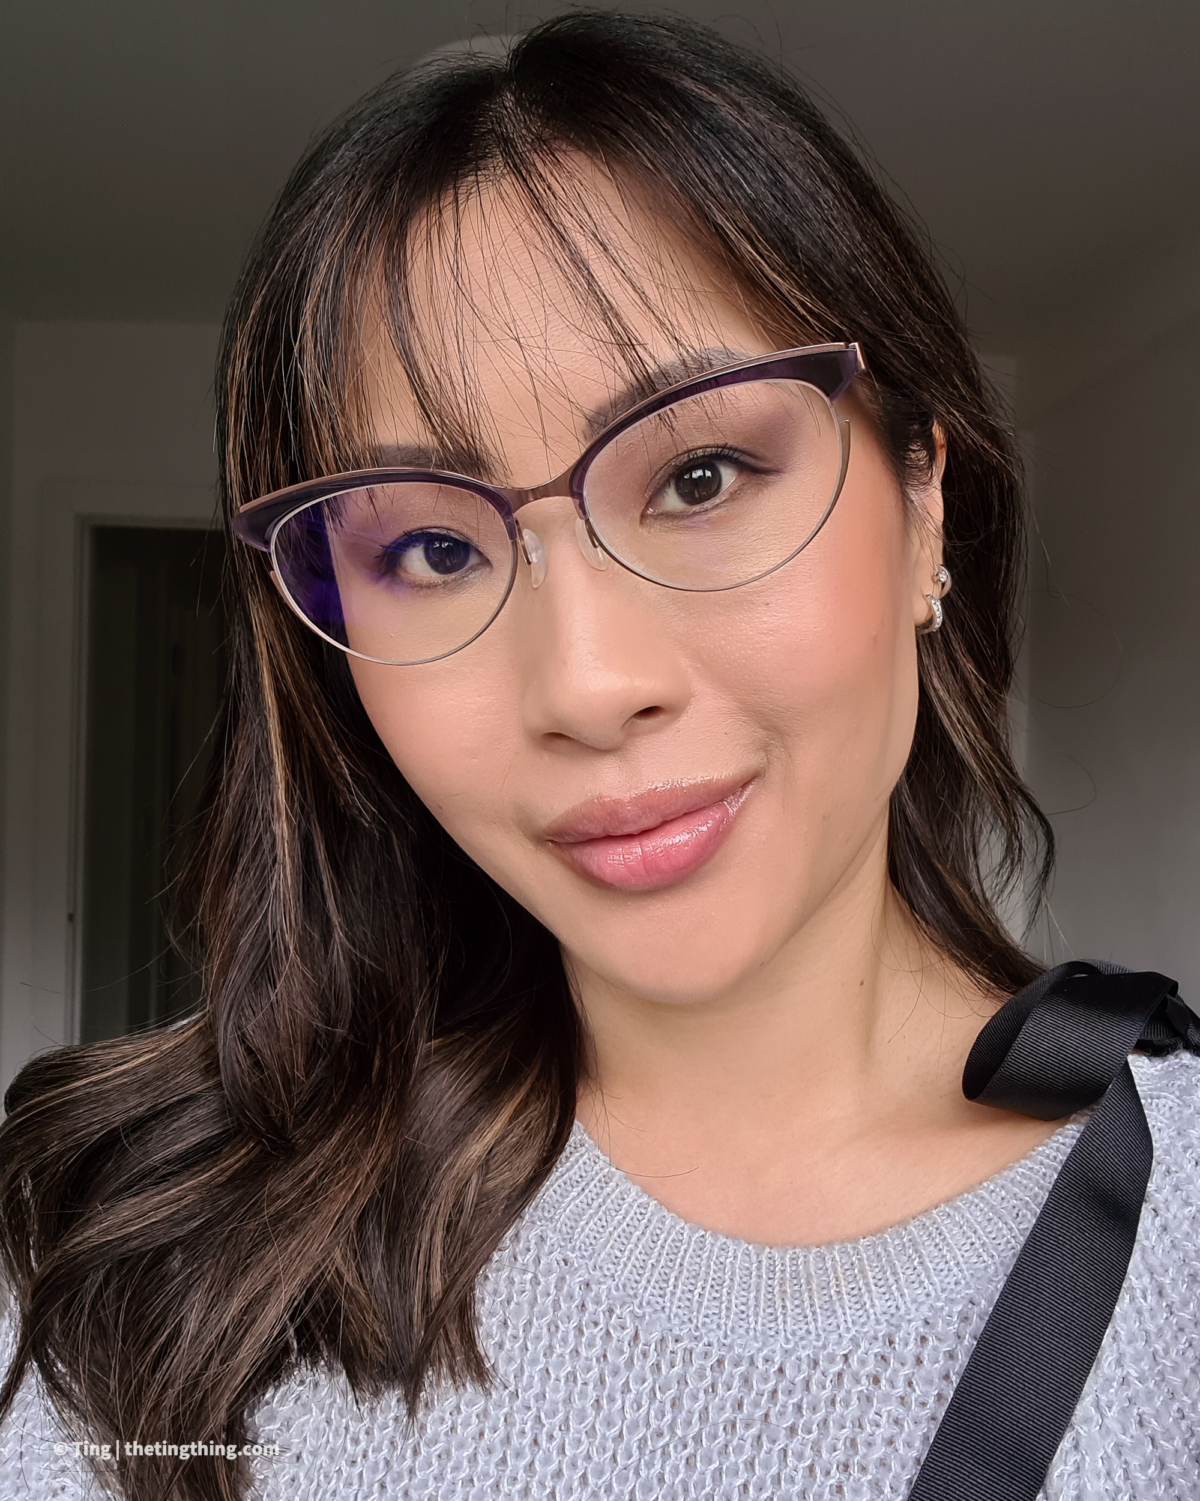 A Chinese woman with highlighted brunette hair smiles at the camera. Her hair is styled with waves and swept to one side. She has a wispy grown out fringe and large bronze and purple glasses. Shop small in Birmingham with a haircut and colour from award winning Aesthetics Hair.